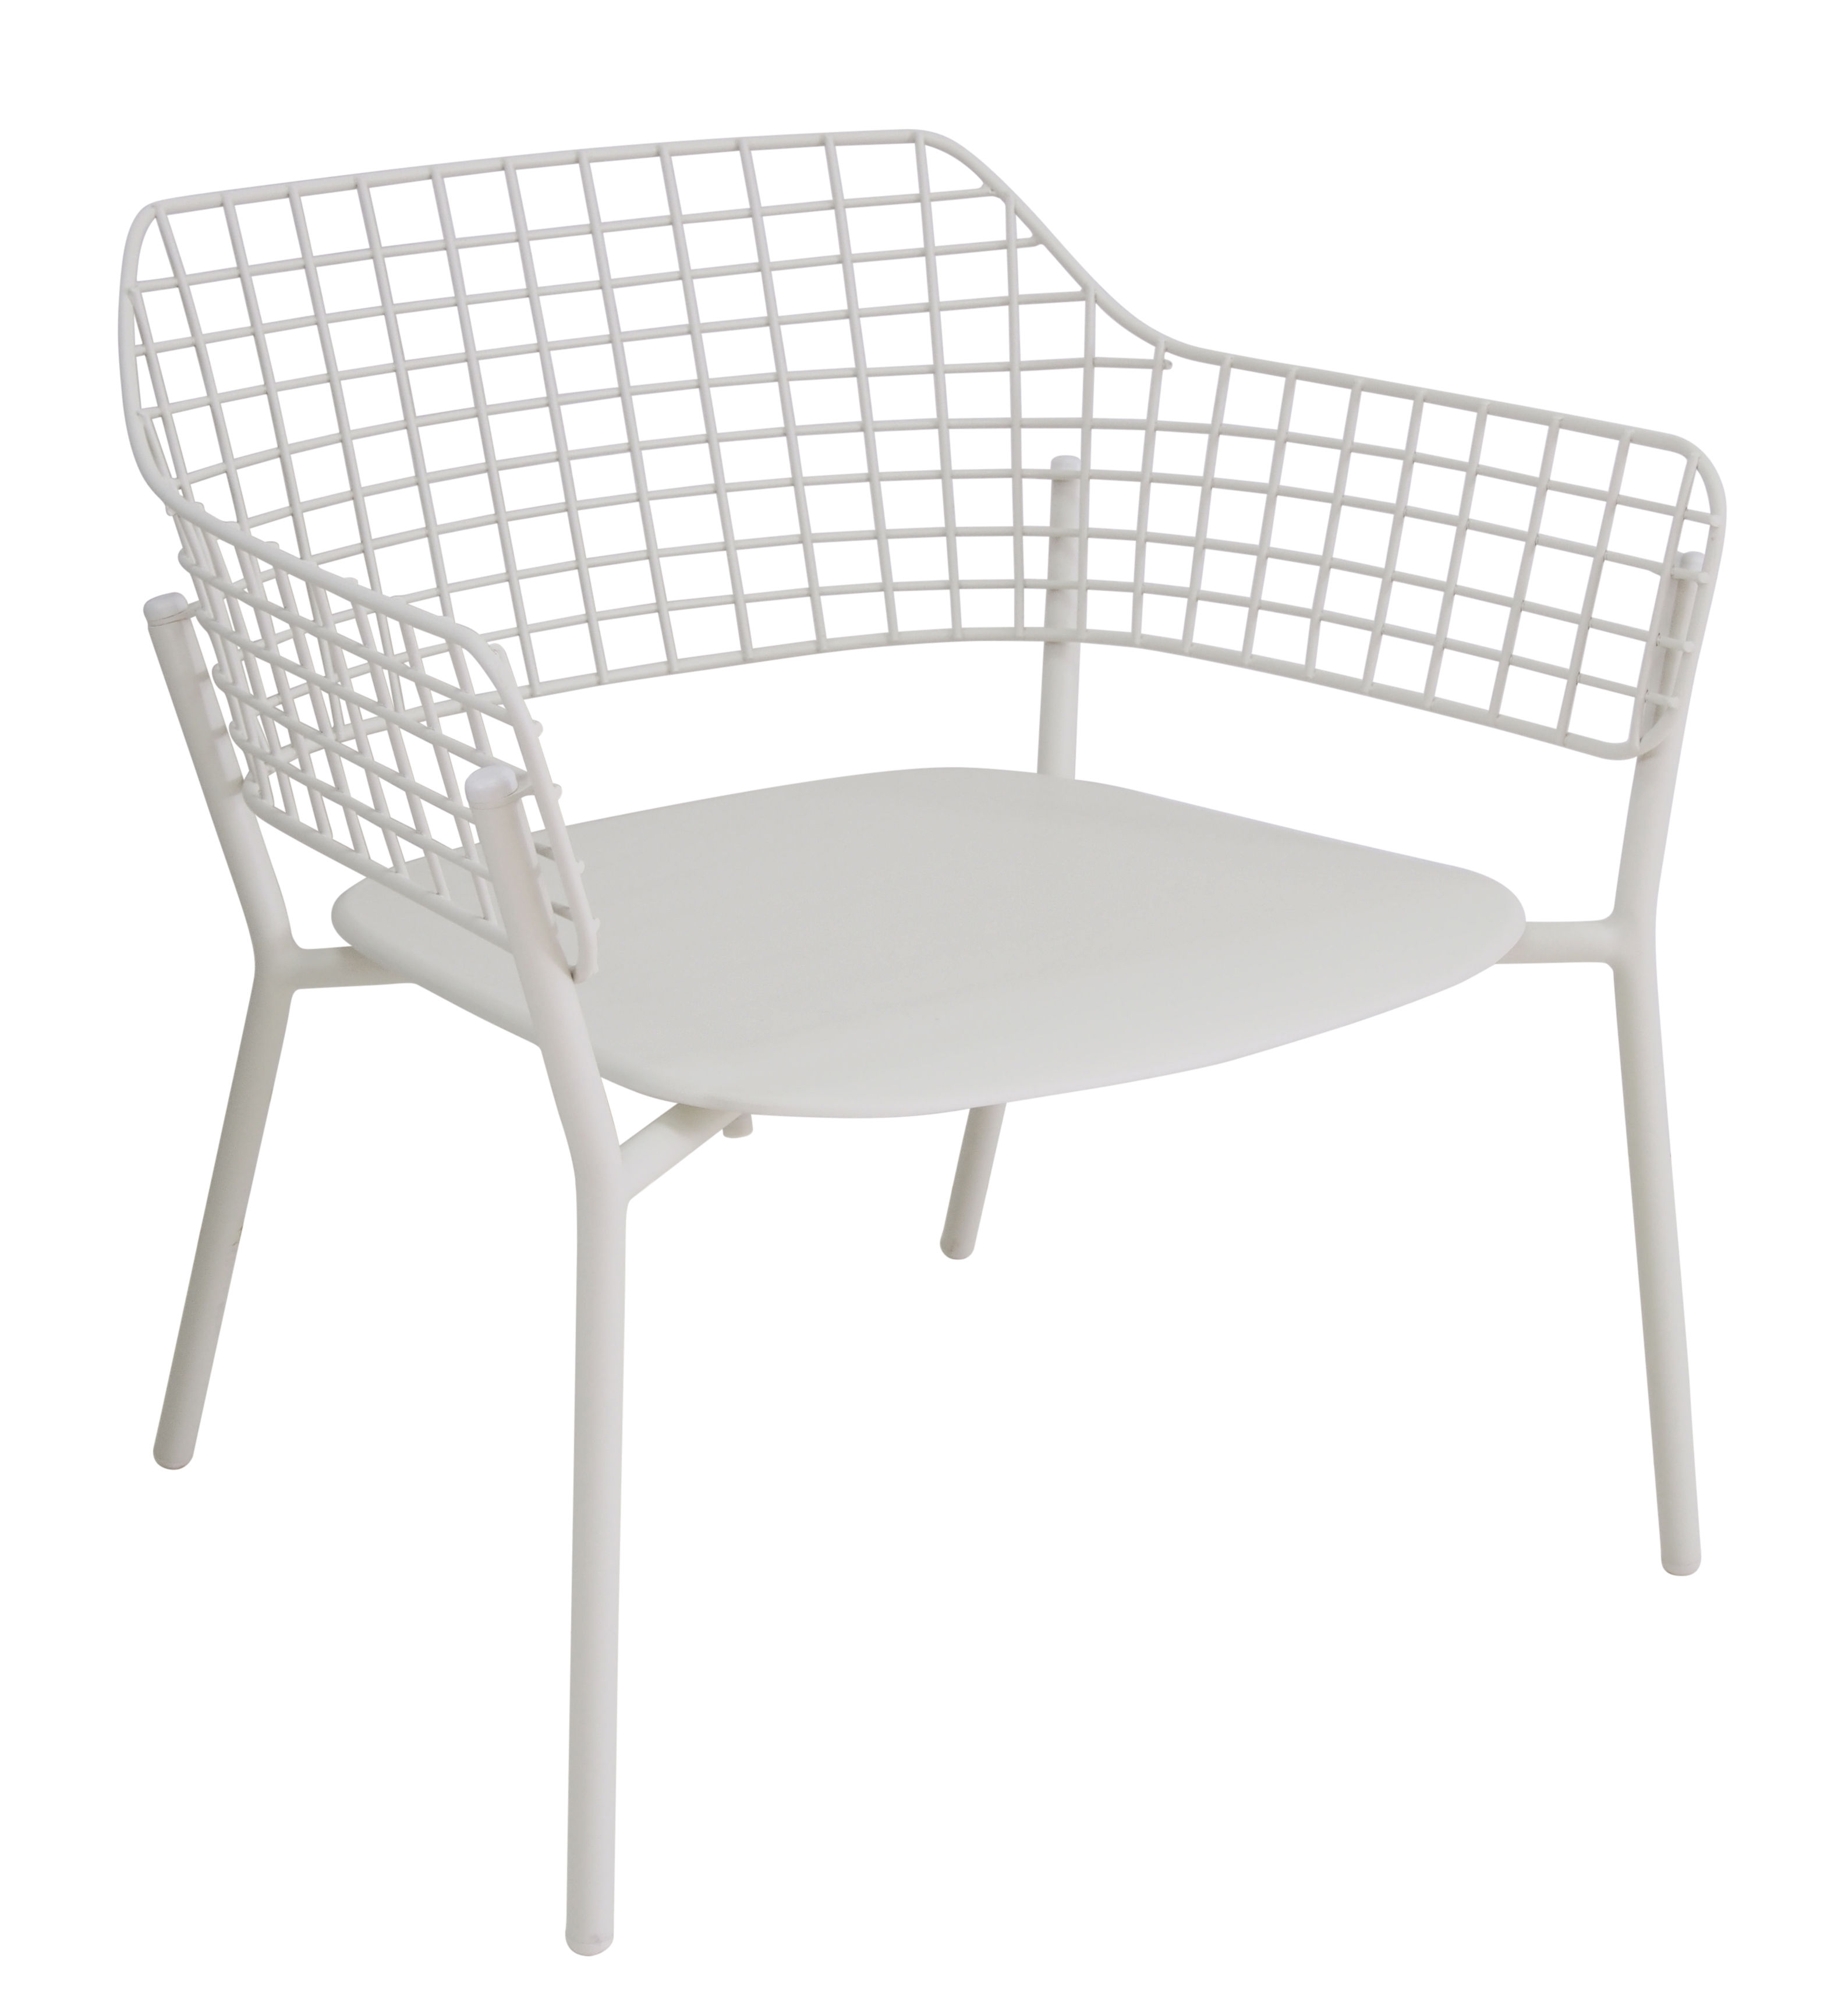 Furniture - Armchairs - Lyze Stackable low chair - Metal by Emu - Matt white - Varnished aluminium, Varnished stainless steel